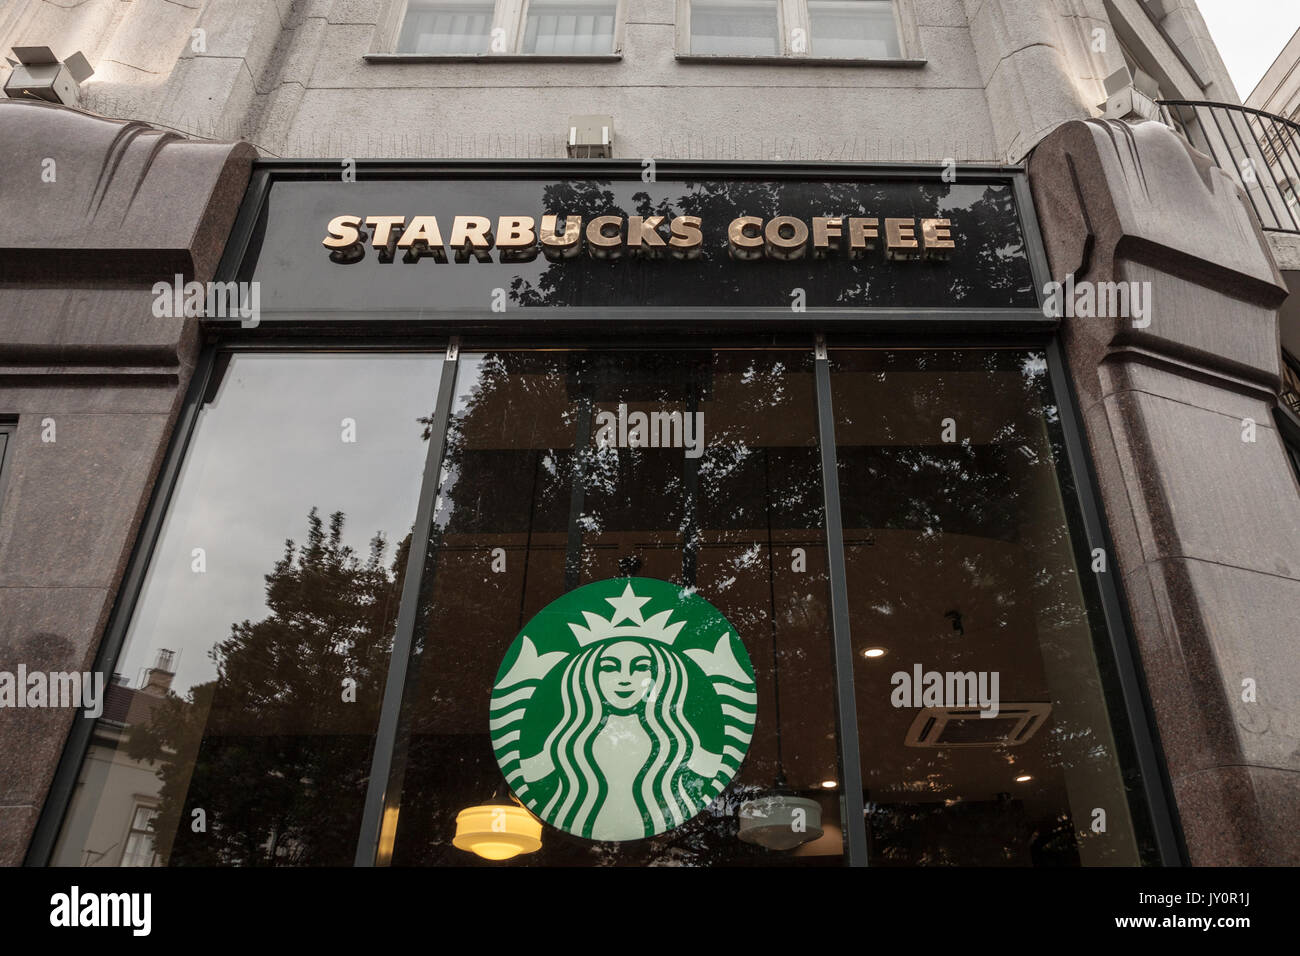 BUDAPEST, HUNGARY - AUGUST 11, 2017: Starbucks logo in front of a Starbucks coffeehouse in the city center of Budapest, capital city of Hungary  Pictu - Stock Image